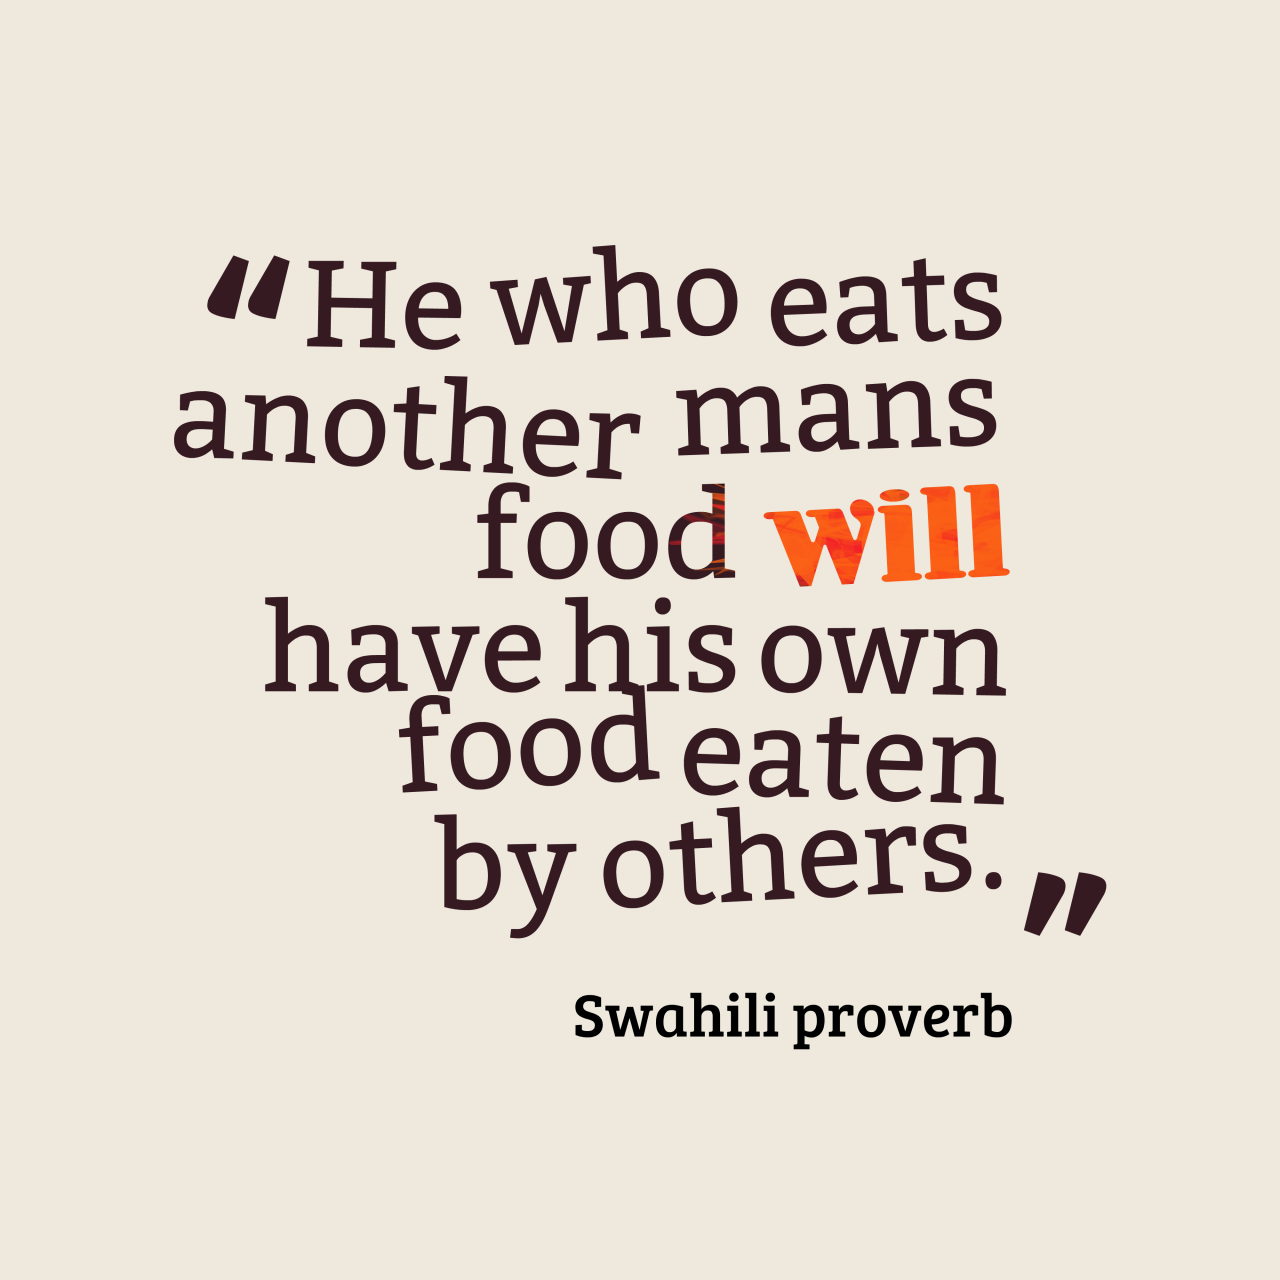 Swahili Proverb About Food